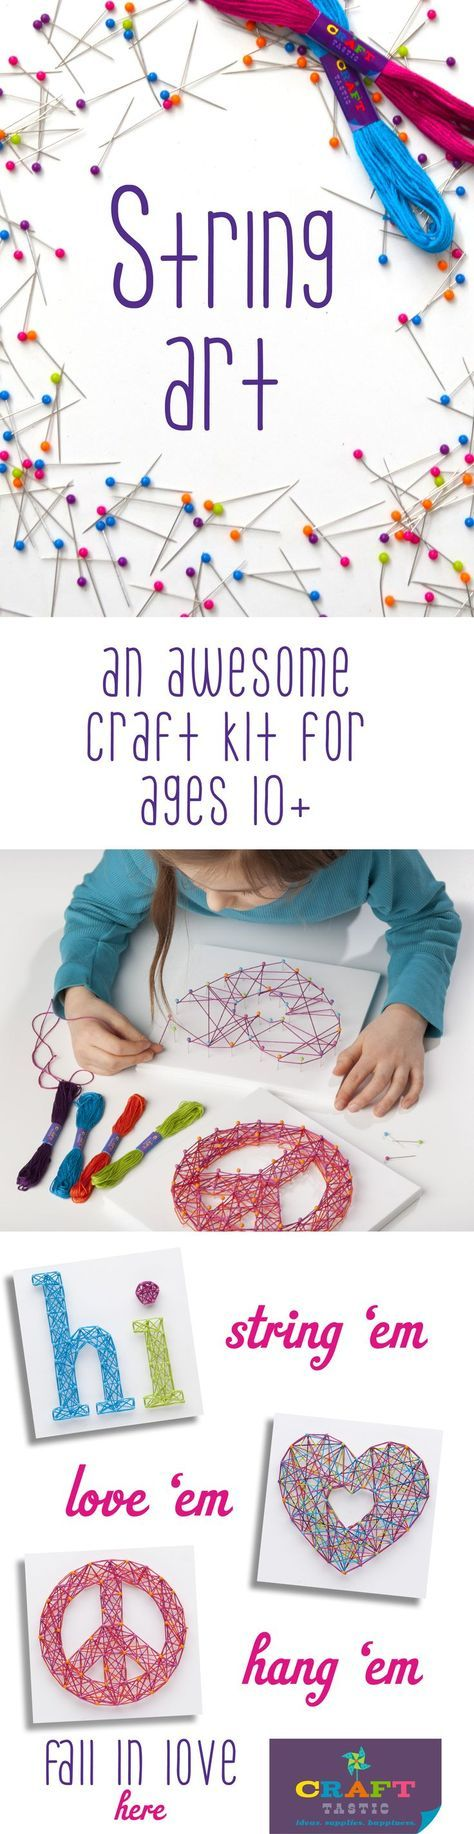 25 best ideas about august kids crafts on pinterest for Crafts for girls age 9